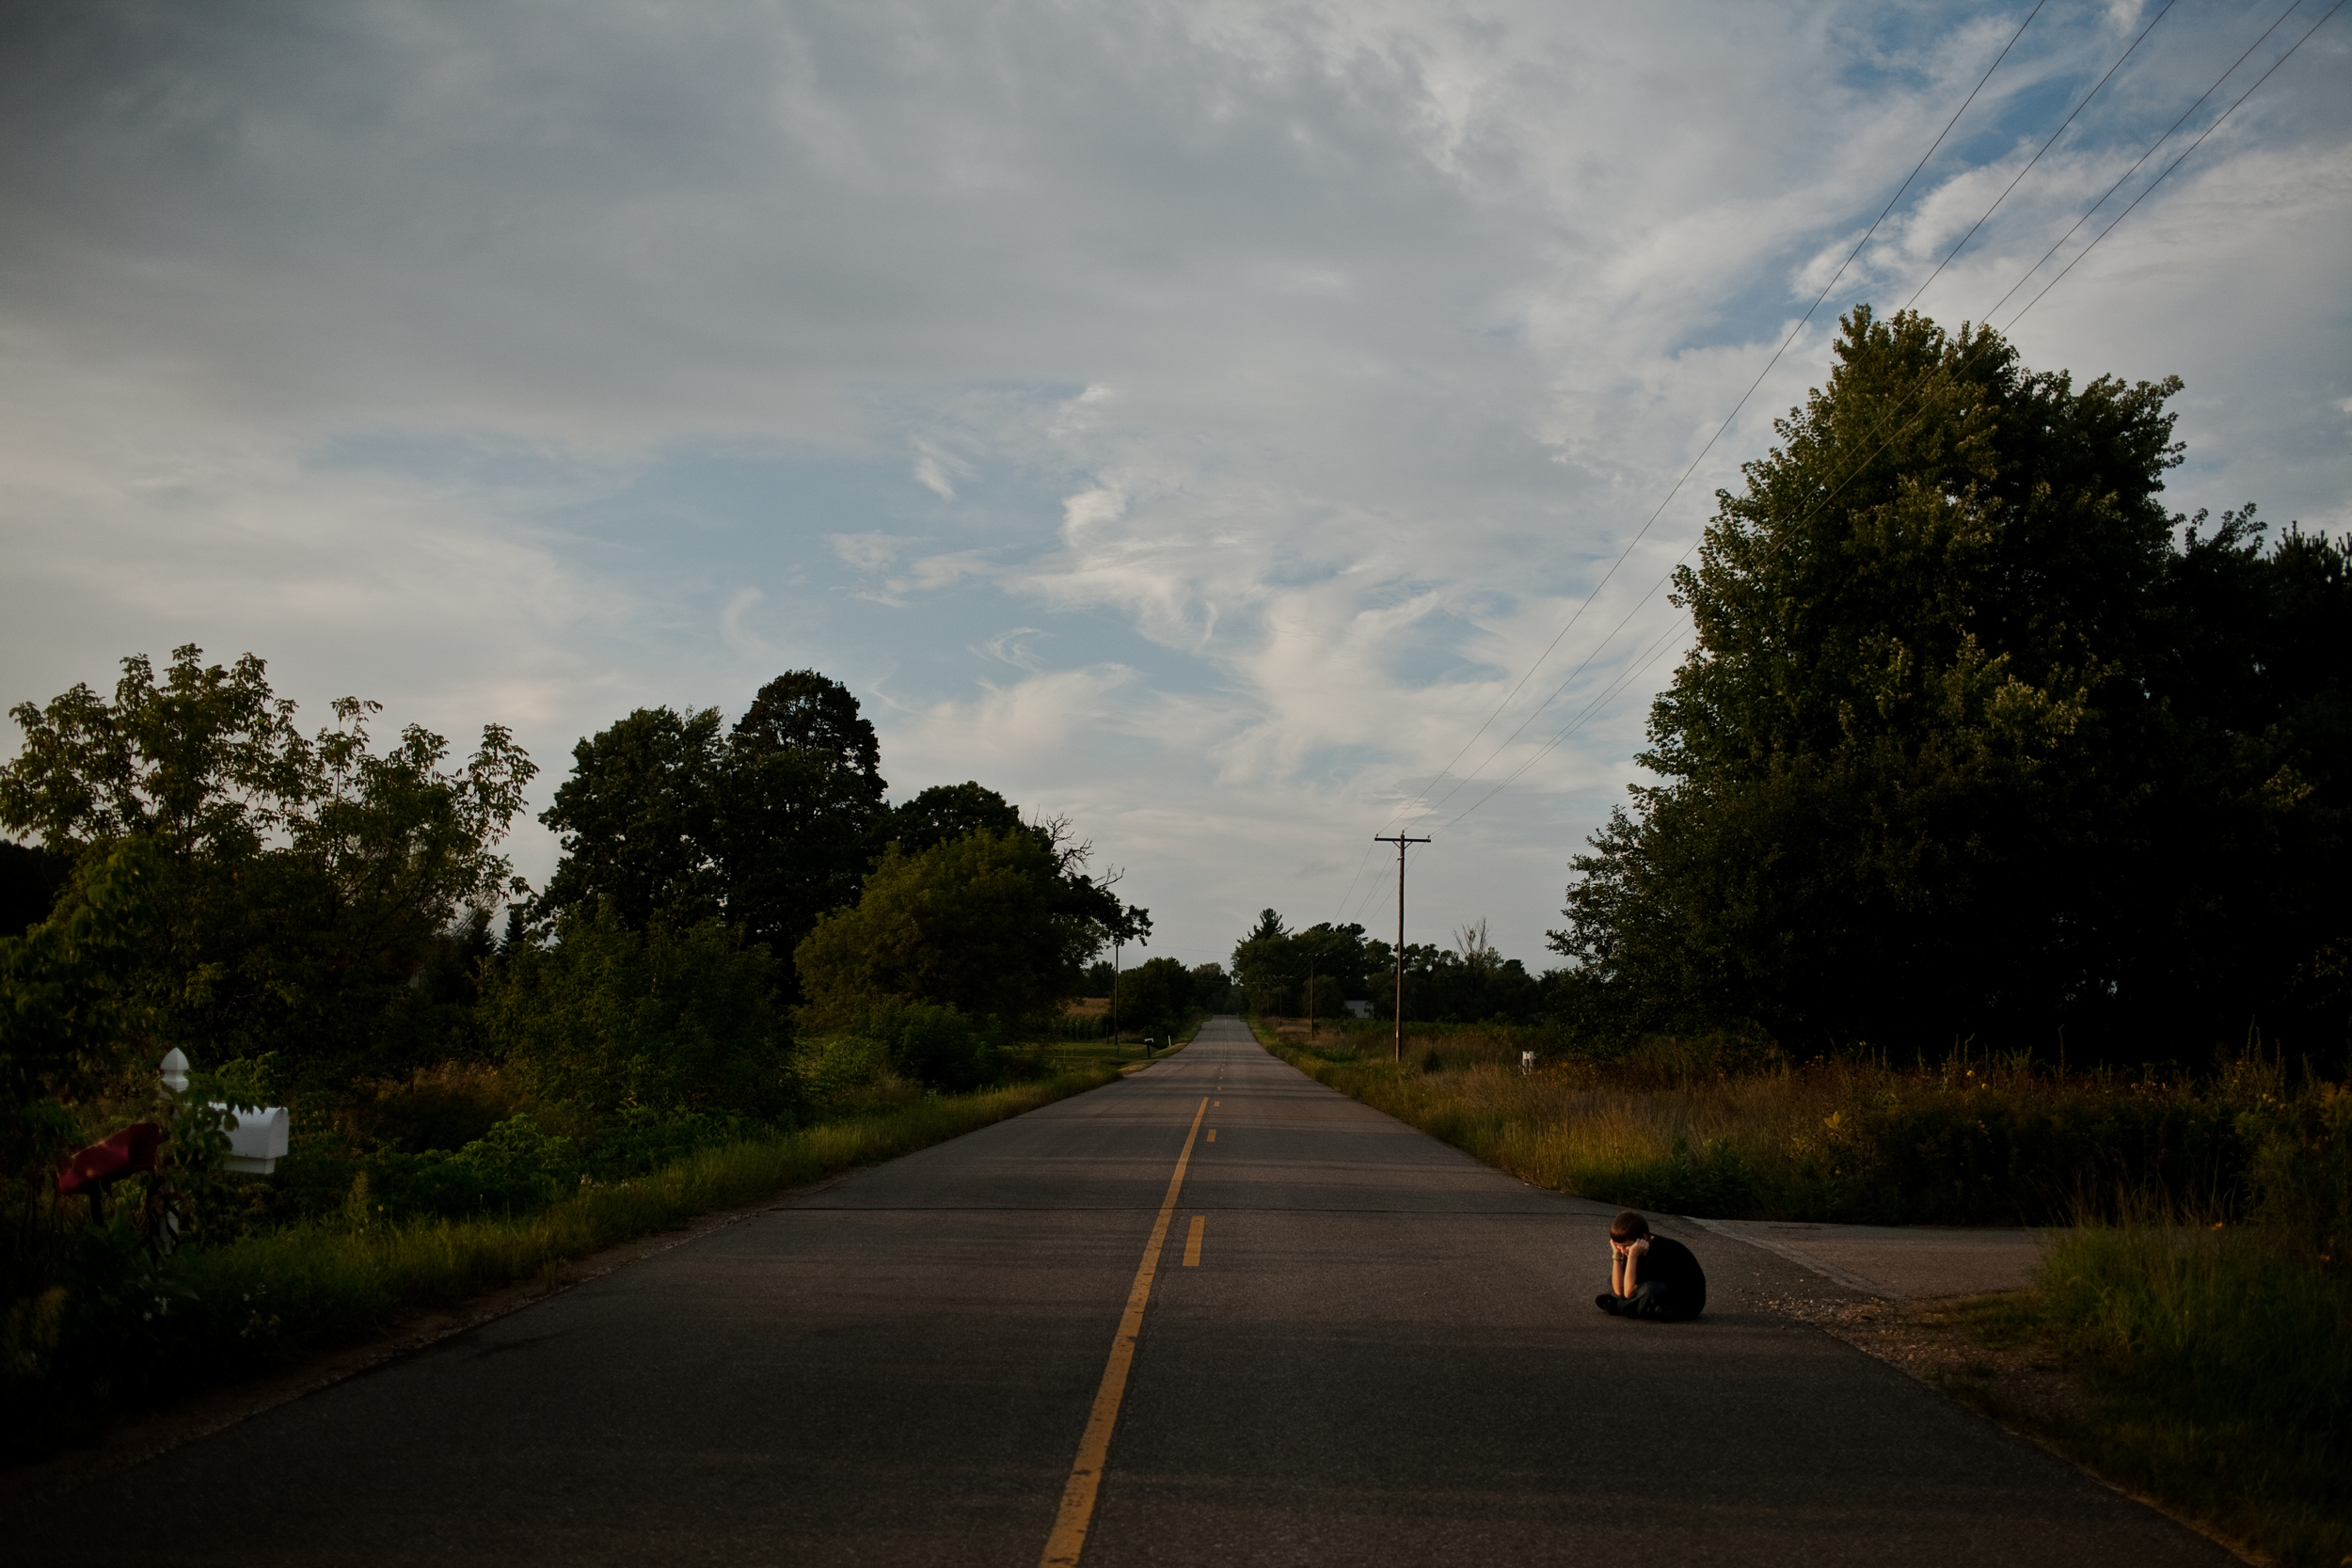 Isaac sits alone, outside his uncle's house as the sun sets over the wide open road.